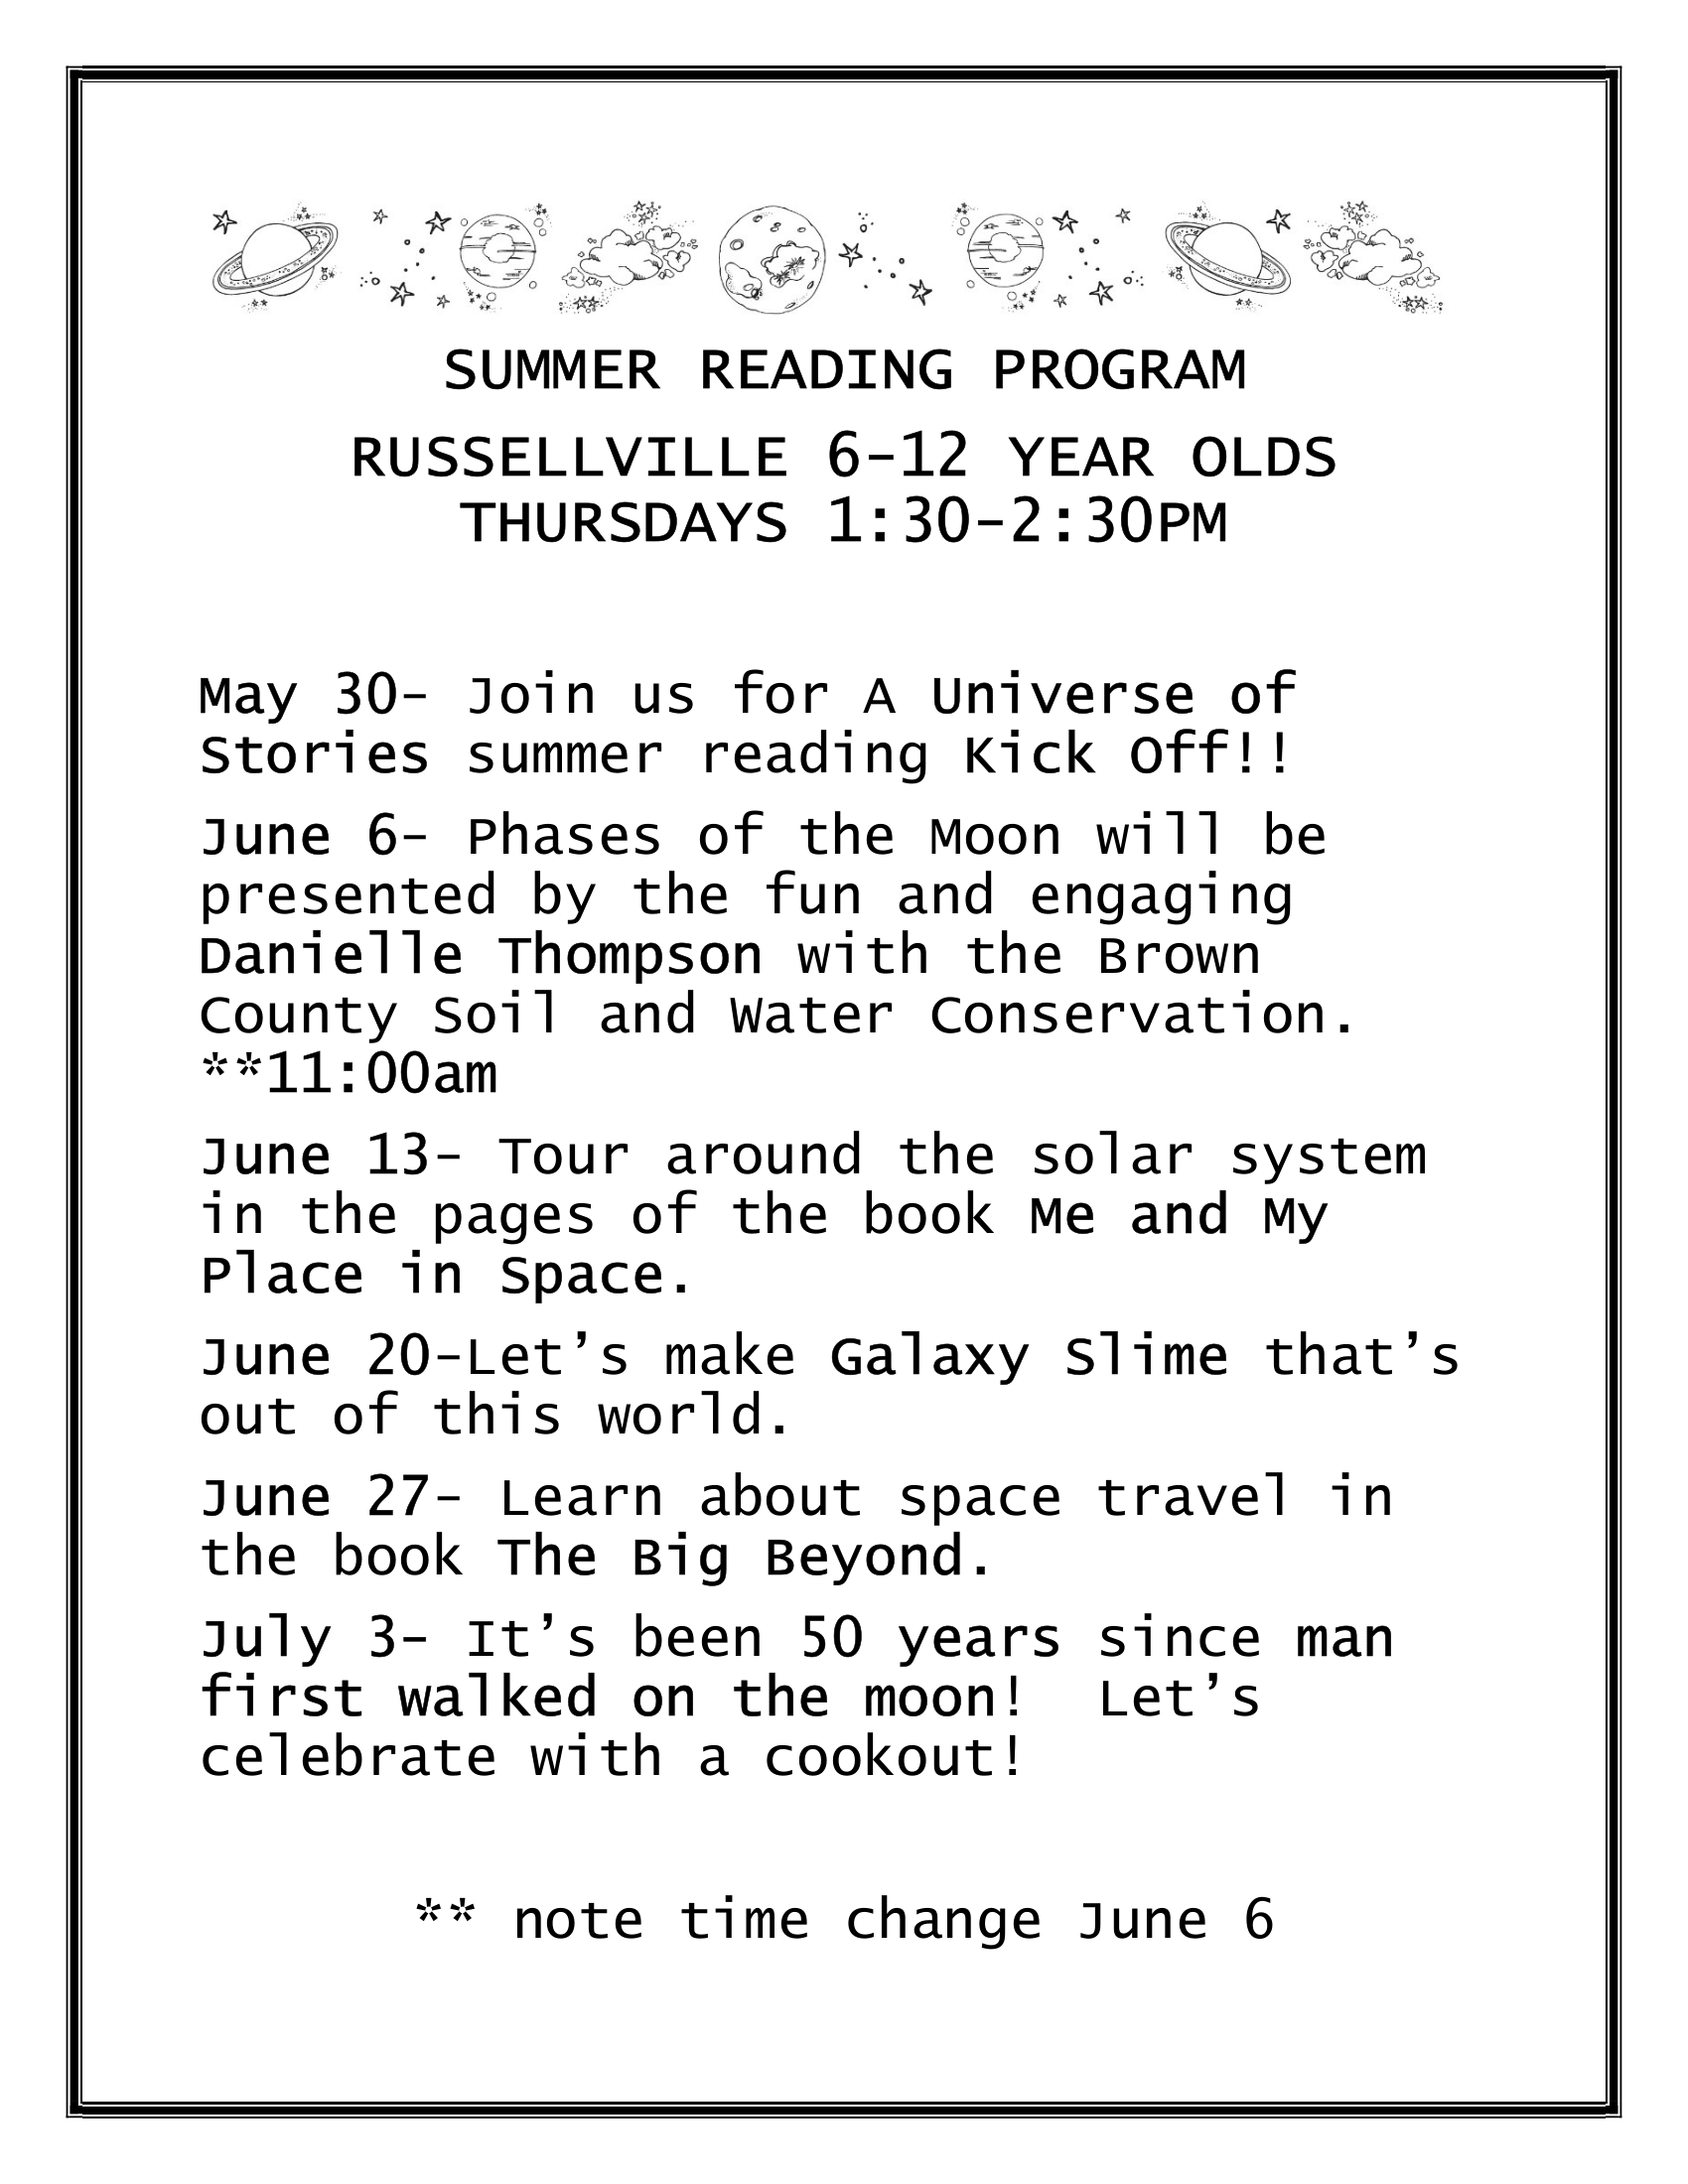 Summer Reading Program (6 to 12 Year Old) - Russellville Branch